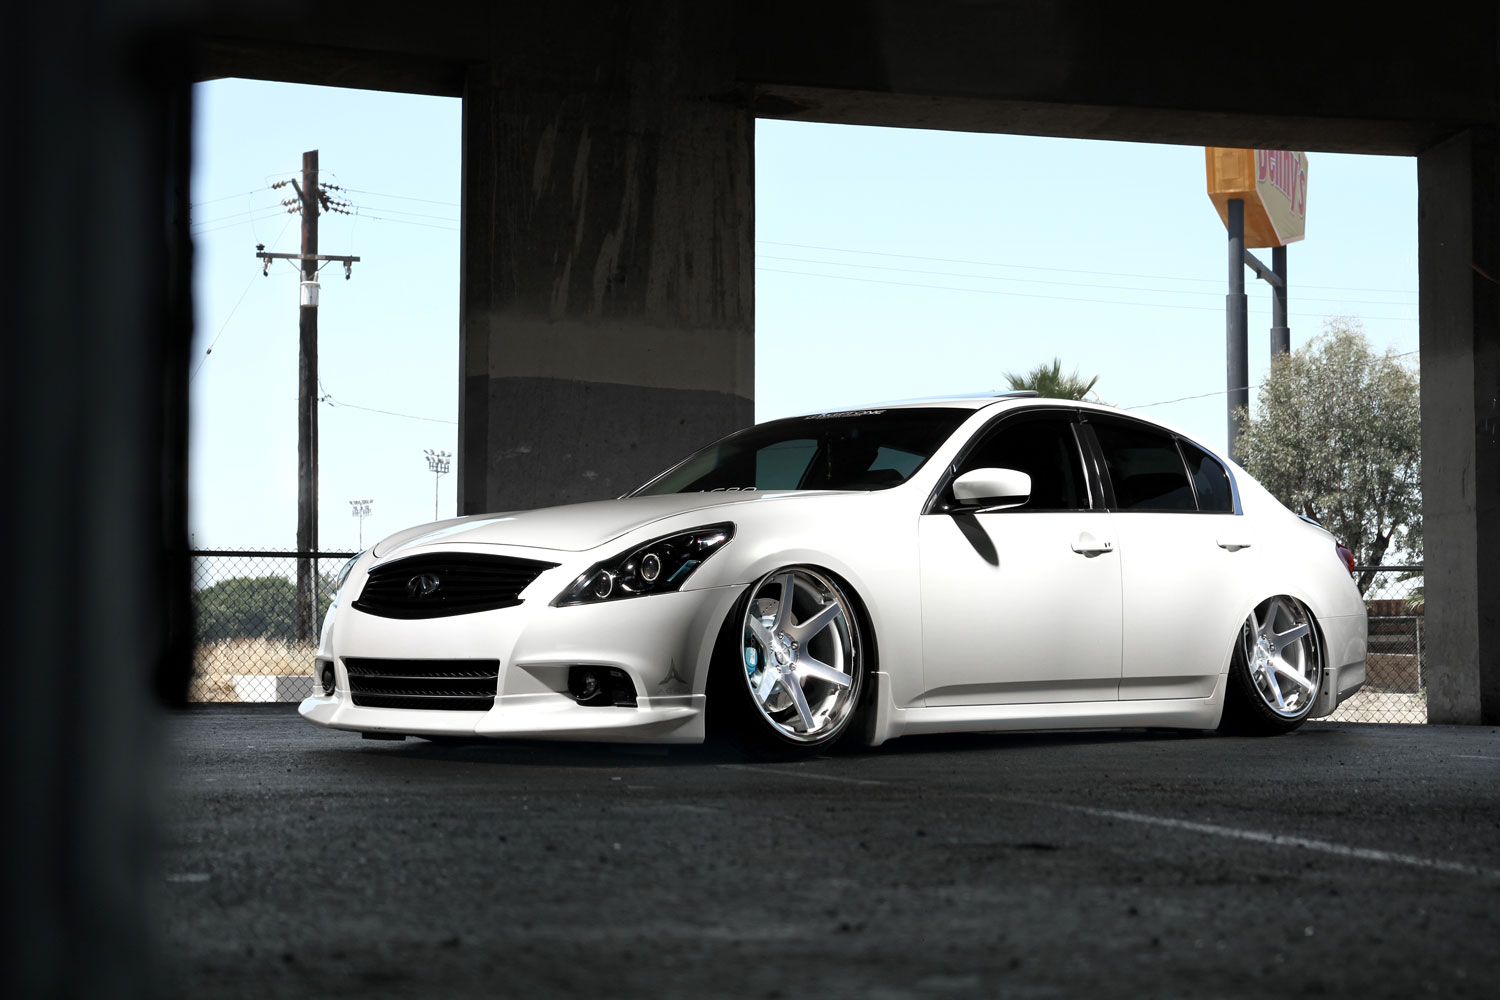 myg37 in addition fly1motorsports together with 523 2013 Infiniti G Coupe 4 besides Shownews953259 together with 522 2013 Infiniti G Convertible 8. on infinity g37